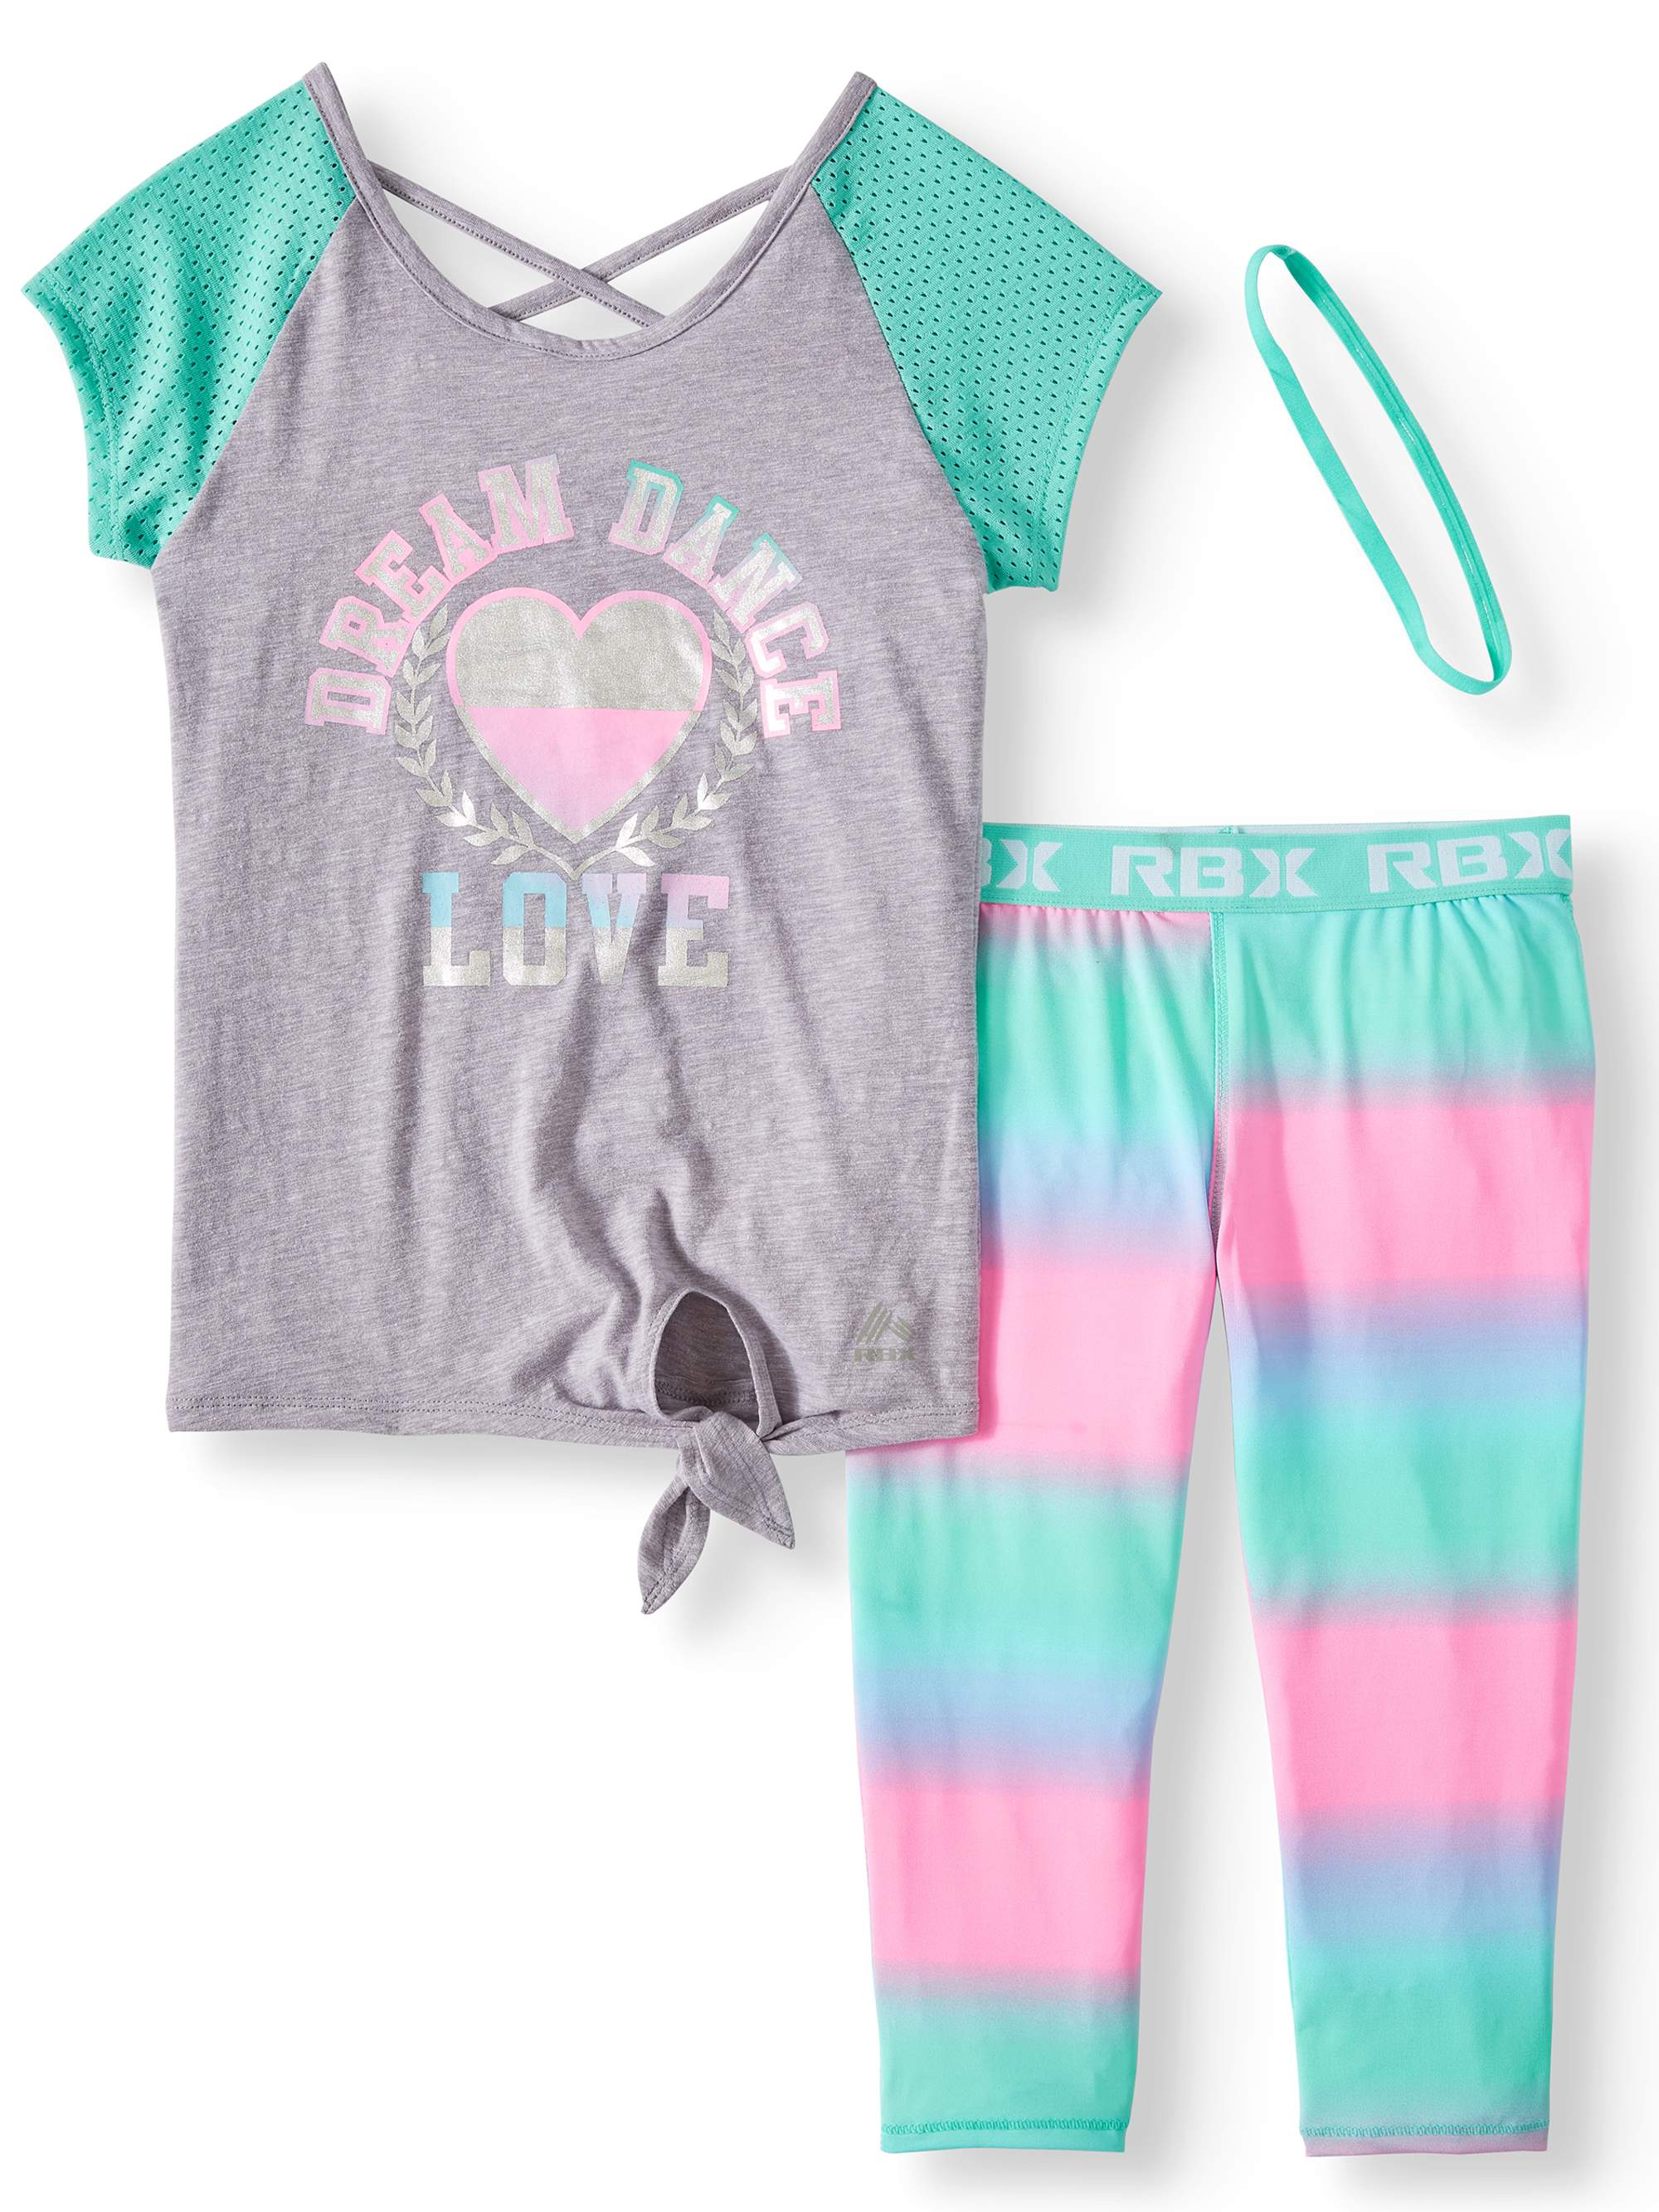 Mesh Sleeve Graphic Top and Ombre Capri Legging, 2-Piece Active Set (Little Girls & Big Girls)